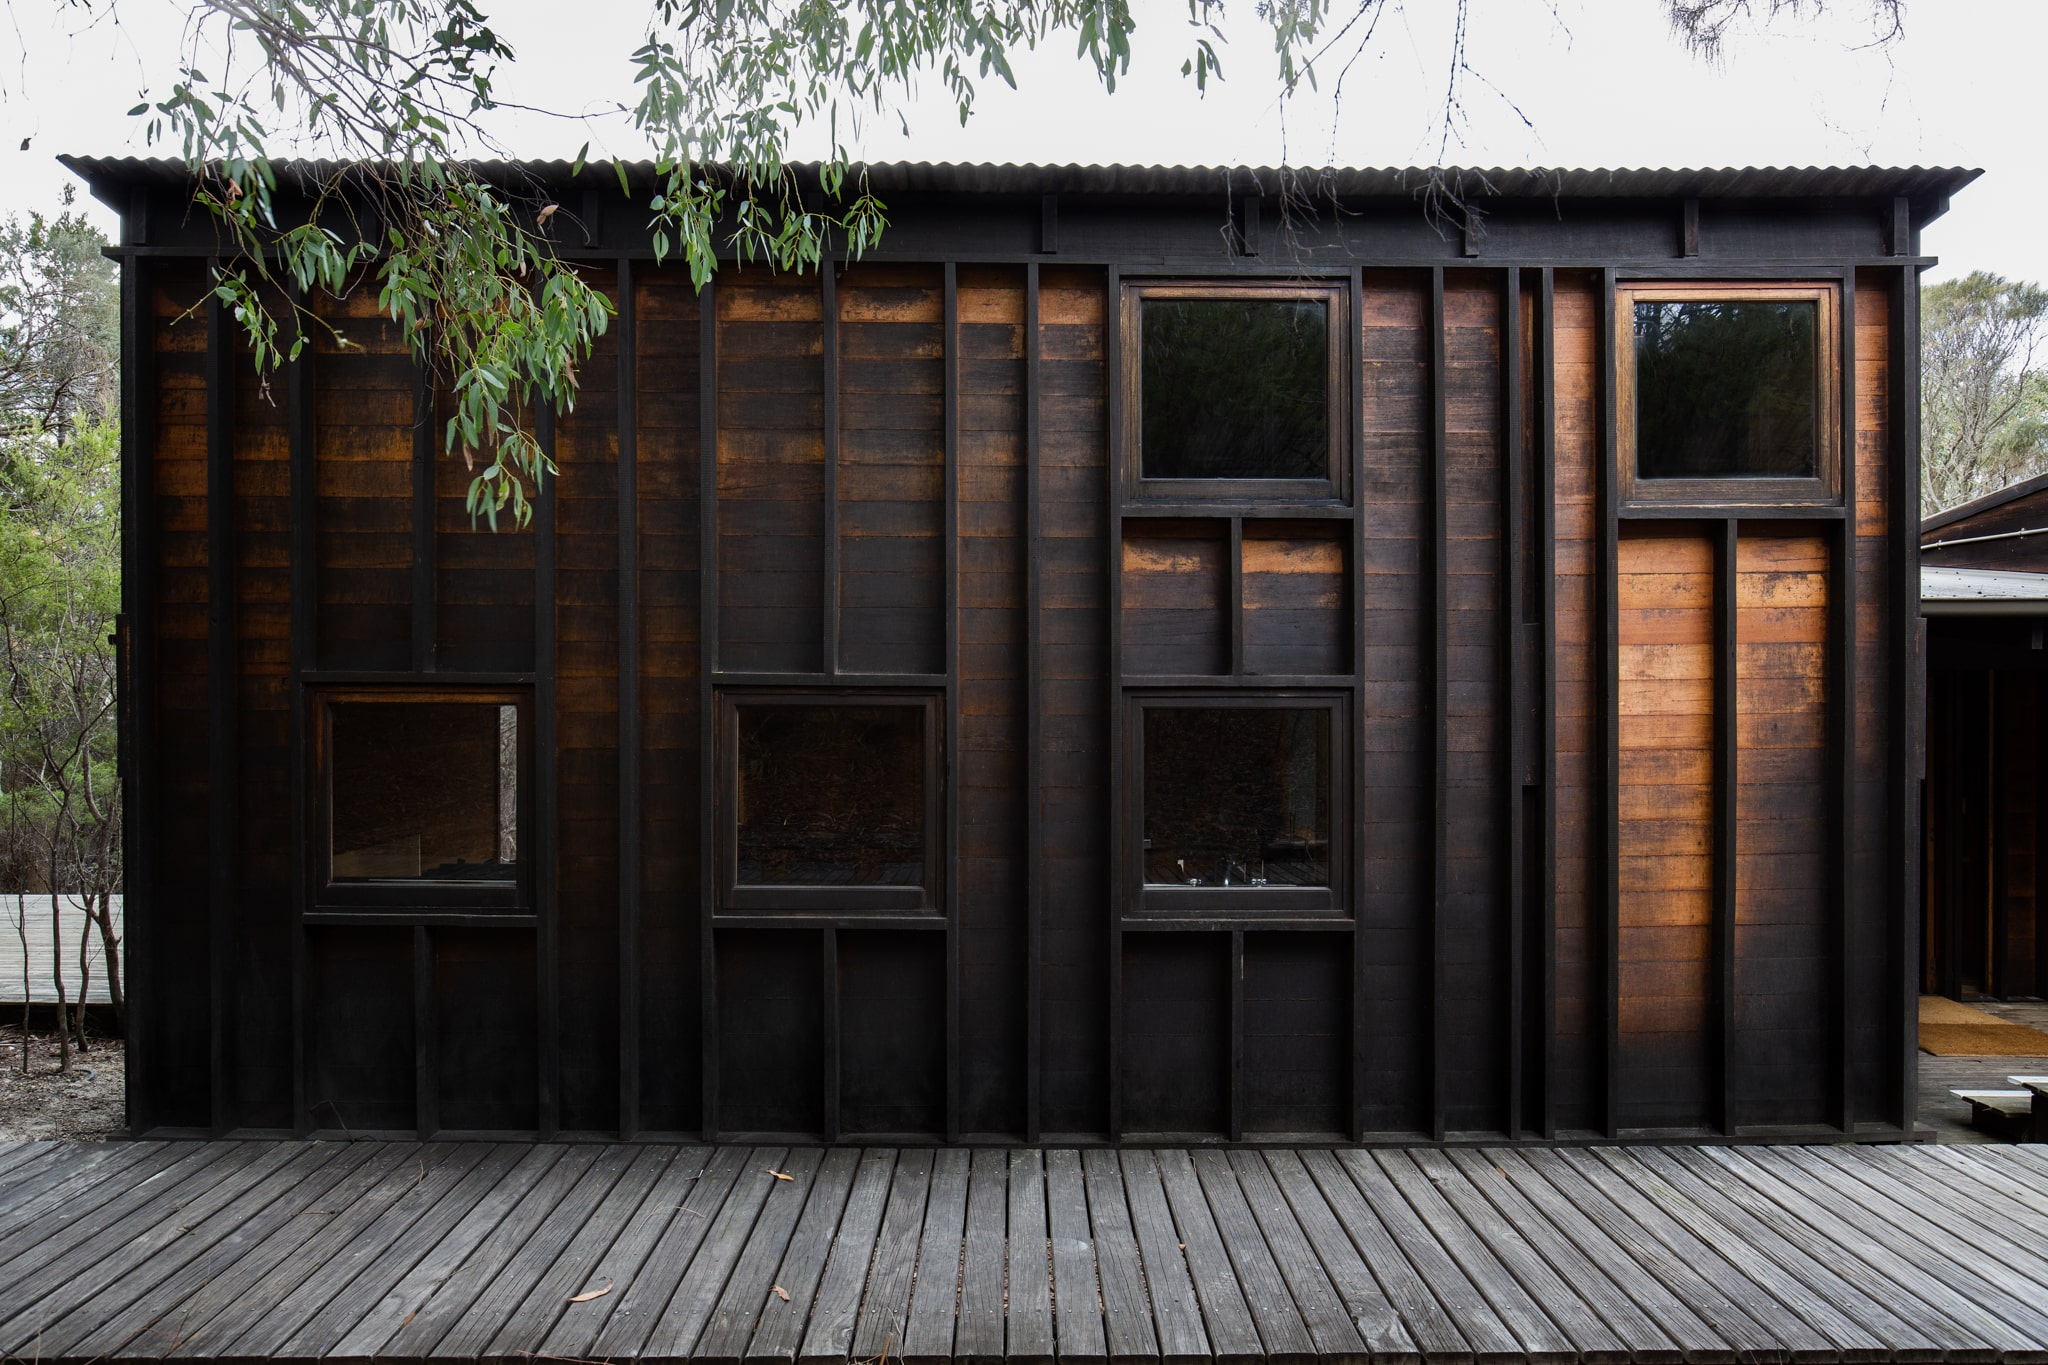 But Challenging And Redefining The Norms Of Both Architecture And Tourism In Tasmania At The Time